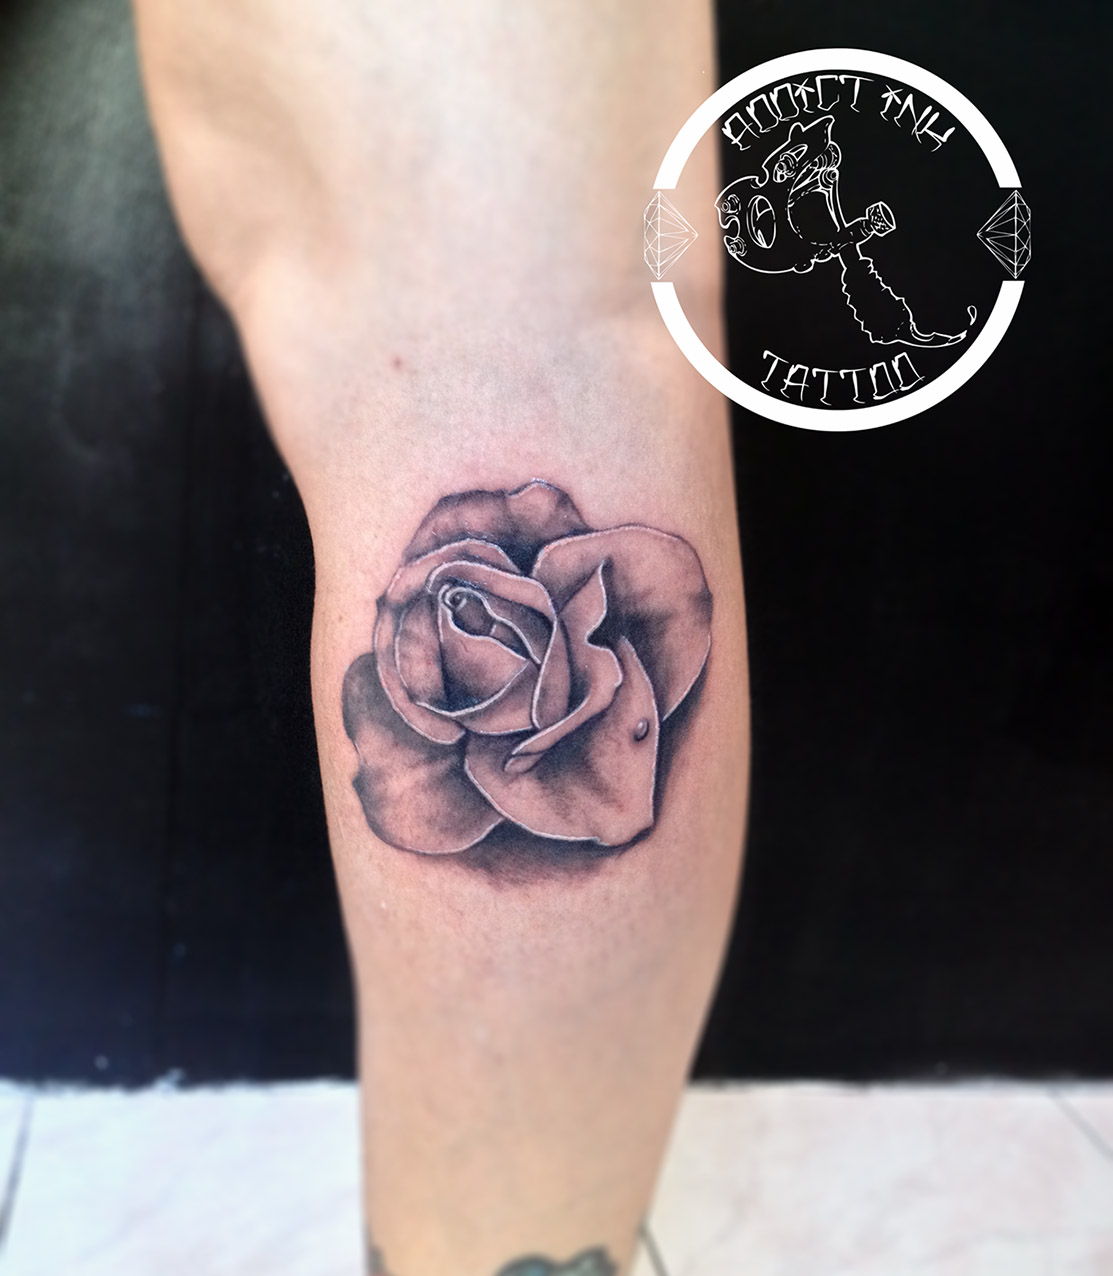 tatouage rose fleur realiste noir et gris addict ink tattoo nice. Black Bedroom Furniture Sets. Home Design Ideas